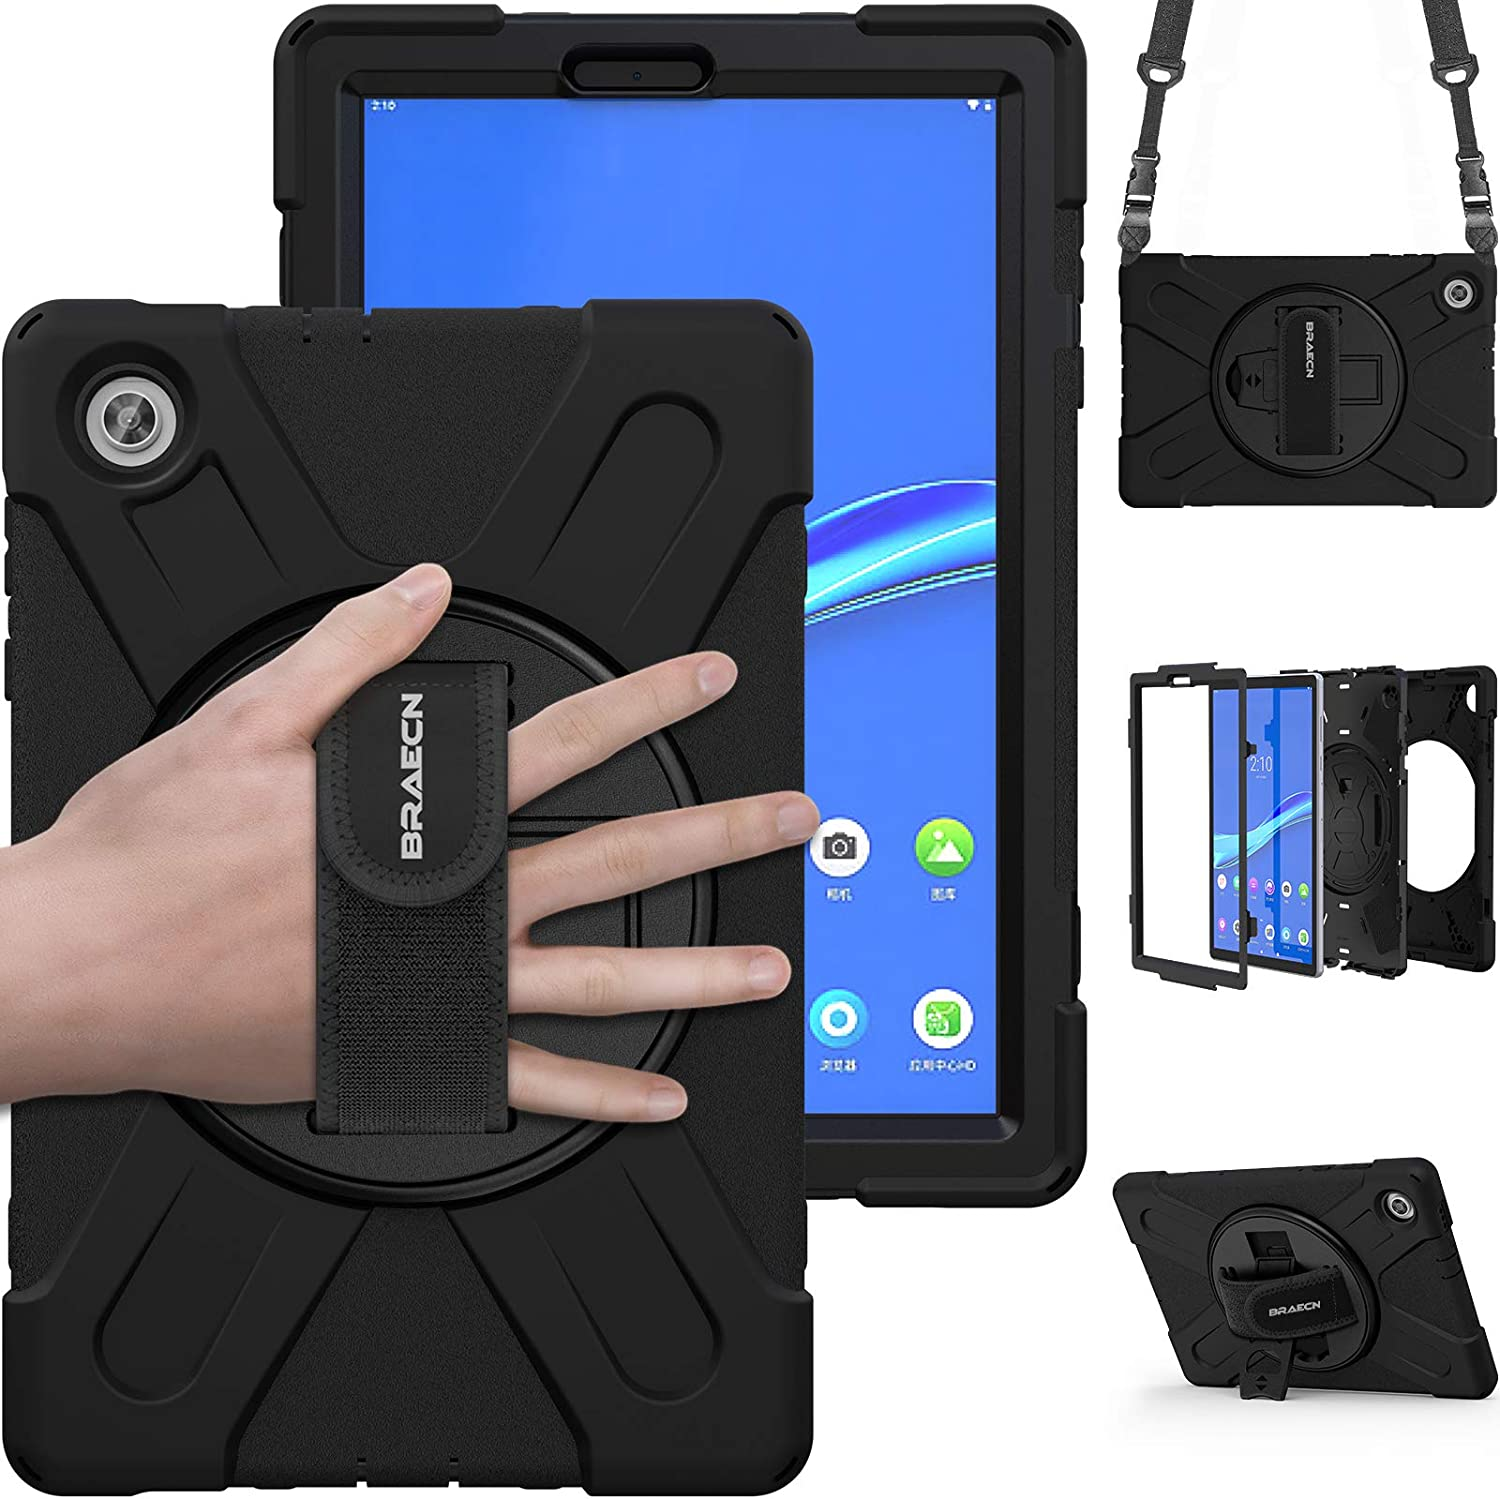 BRAECN Case for Lenovo Tab M10 HD 2nd Gen 2020 (TB-X306X), Heavy Duty Rugged Shockproof Protective Case with carrying Shoulder Strap, kickstand and hand strap for Tab M10 2nd gen 10.1'' TB-X306F-BLACK